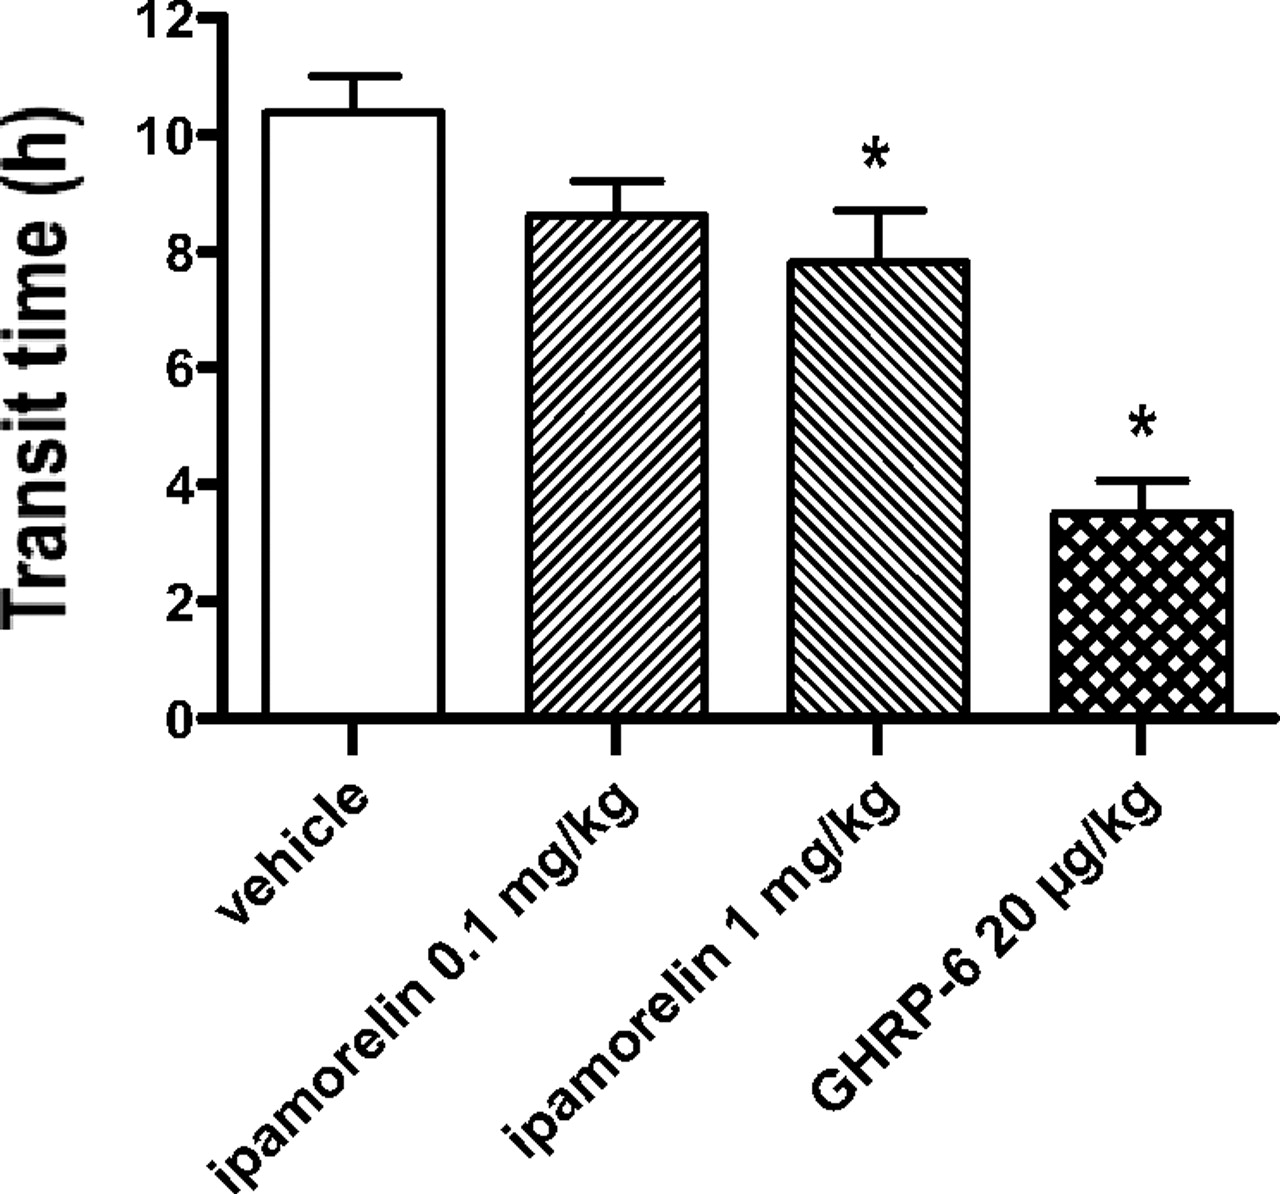 Efficacy of Ipamorelin, a Novel Ghrelin Mimetic, in a Rodent